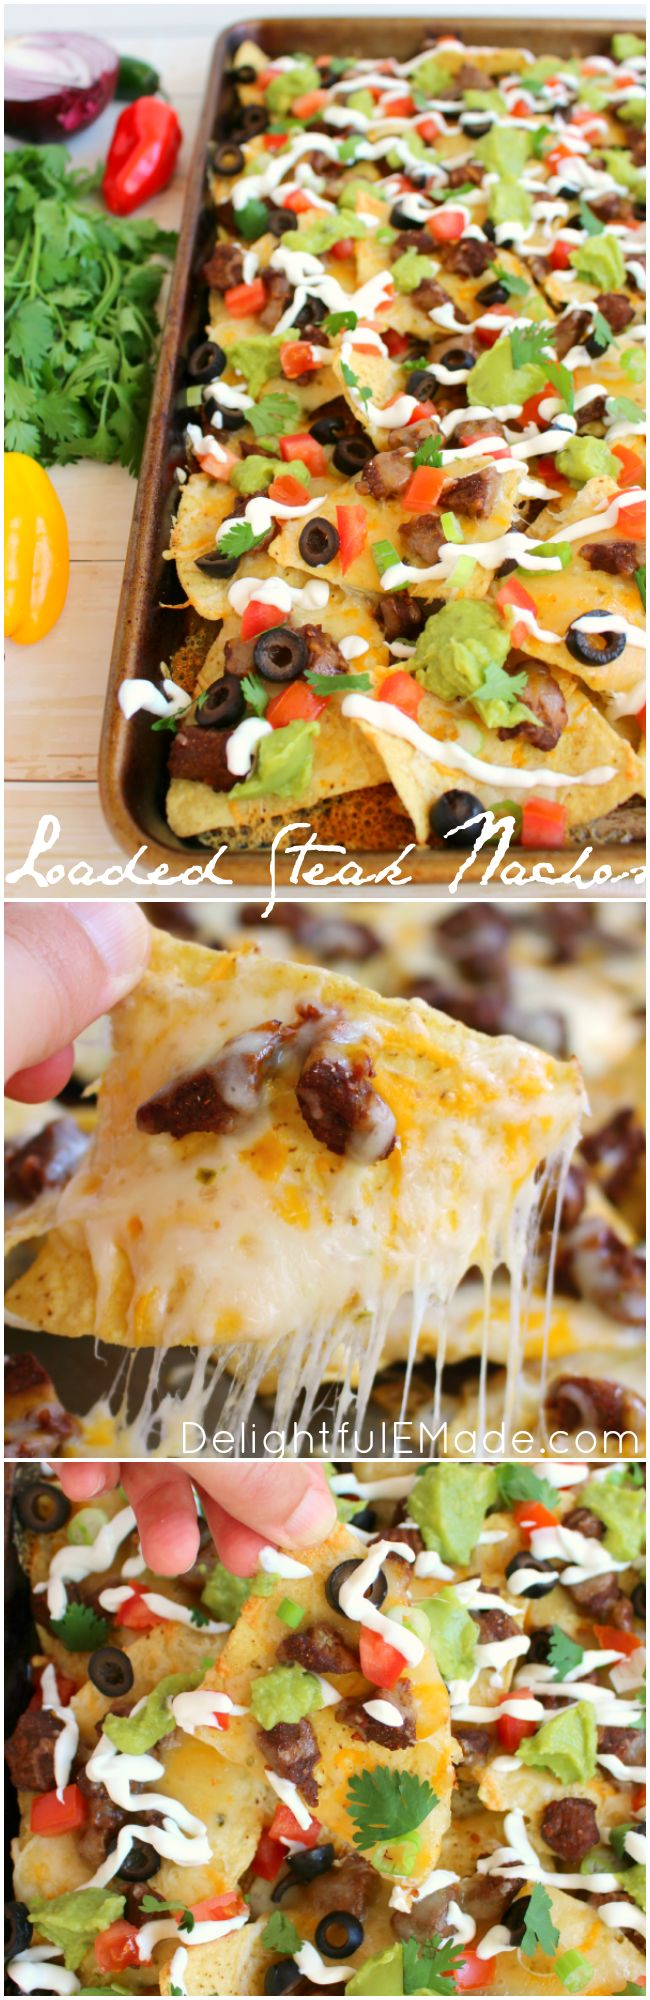 Football food at its finest! These Loaded Steak Nachos have everything you love stacked on top - loads of cheese, seasoned steak, tomatoes, onions, guacamole and more! Eat 'em while their hot and make another batch for the second half! [ad] #NaturallyCheesy